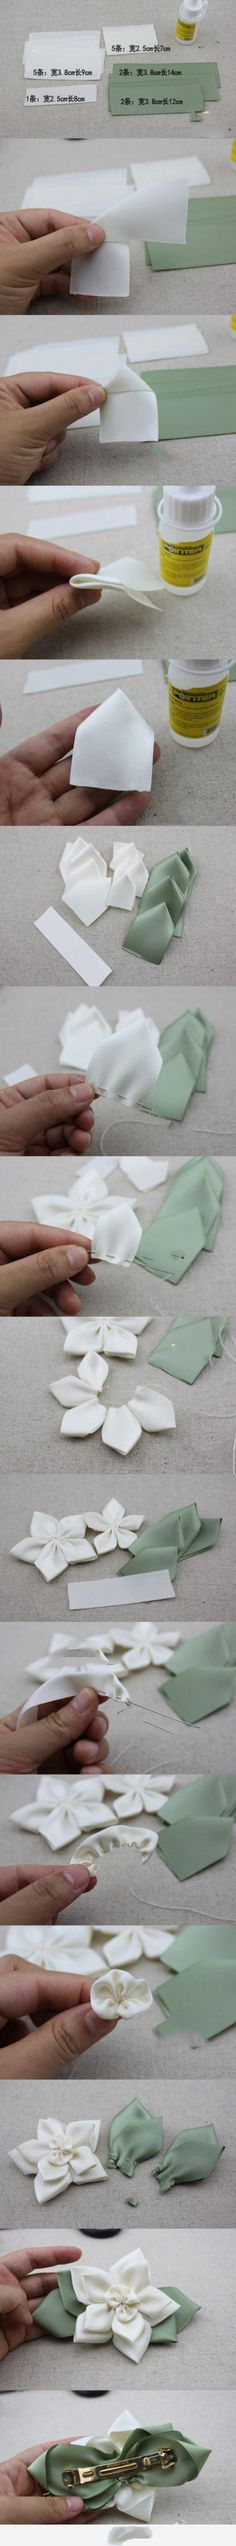 DIY: 12 CREATIVE  INTERESTING  CRAFTS  http://www.fashiondivadesign.com/diy-12-creative-interesting-crafts/